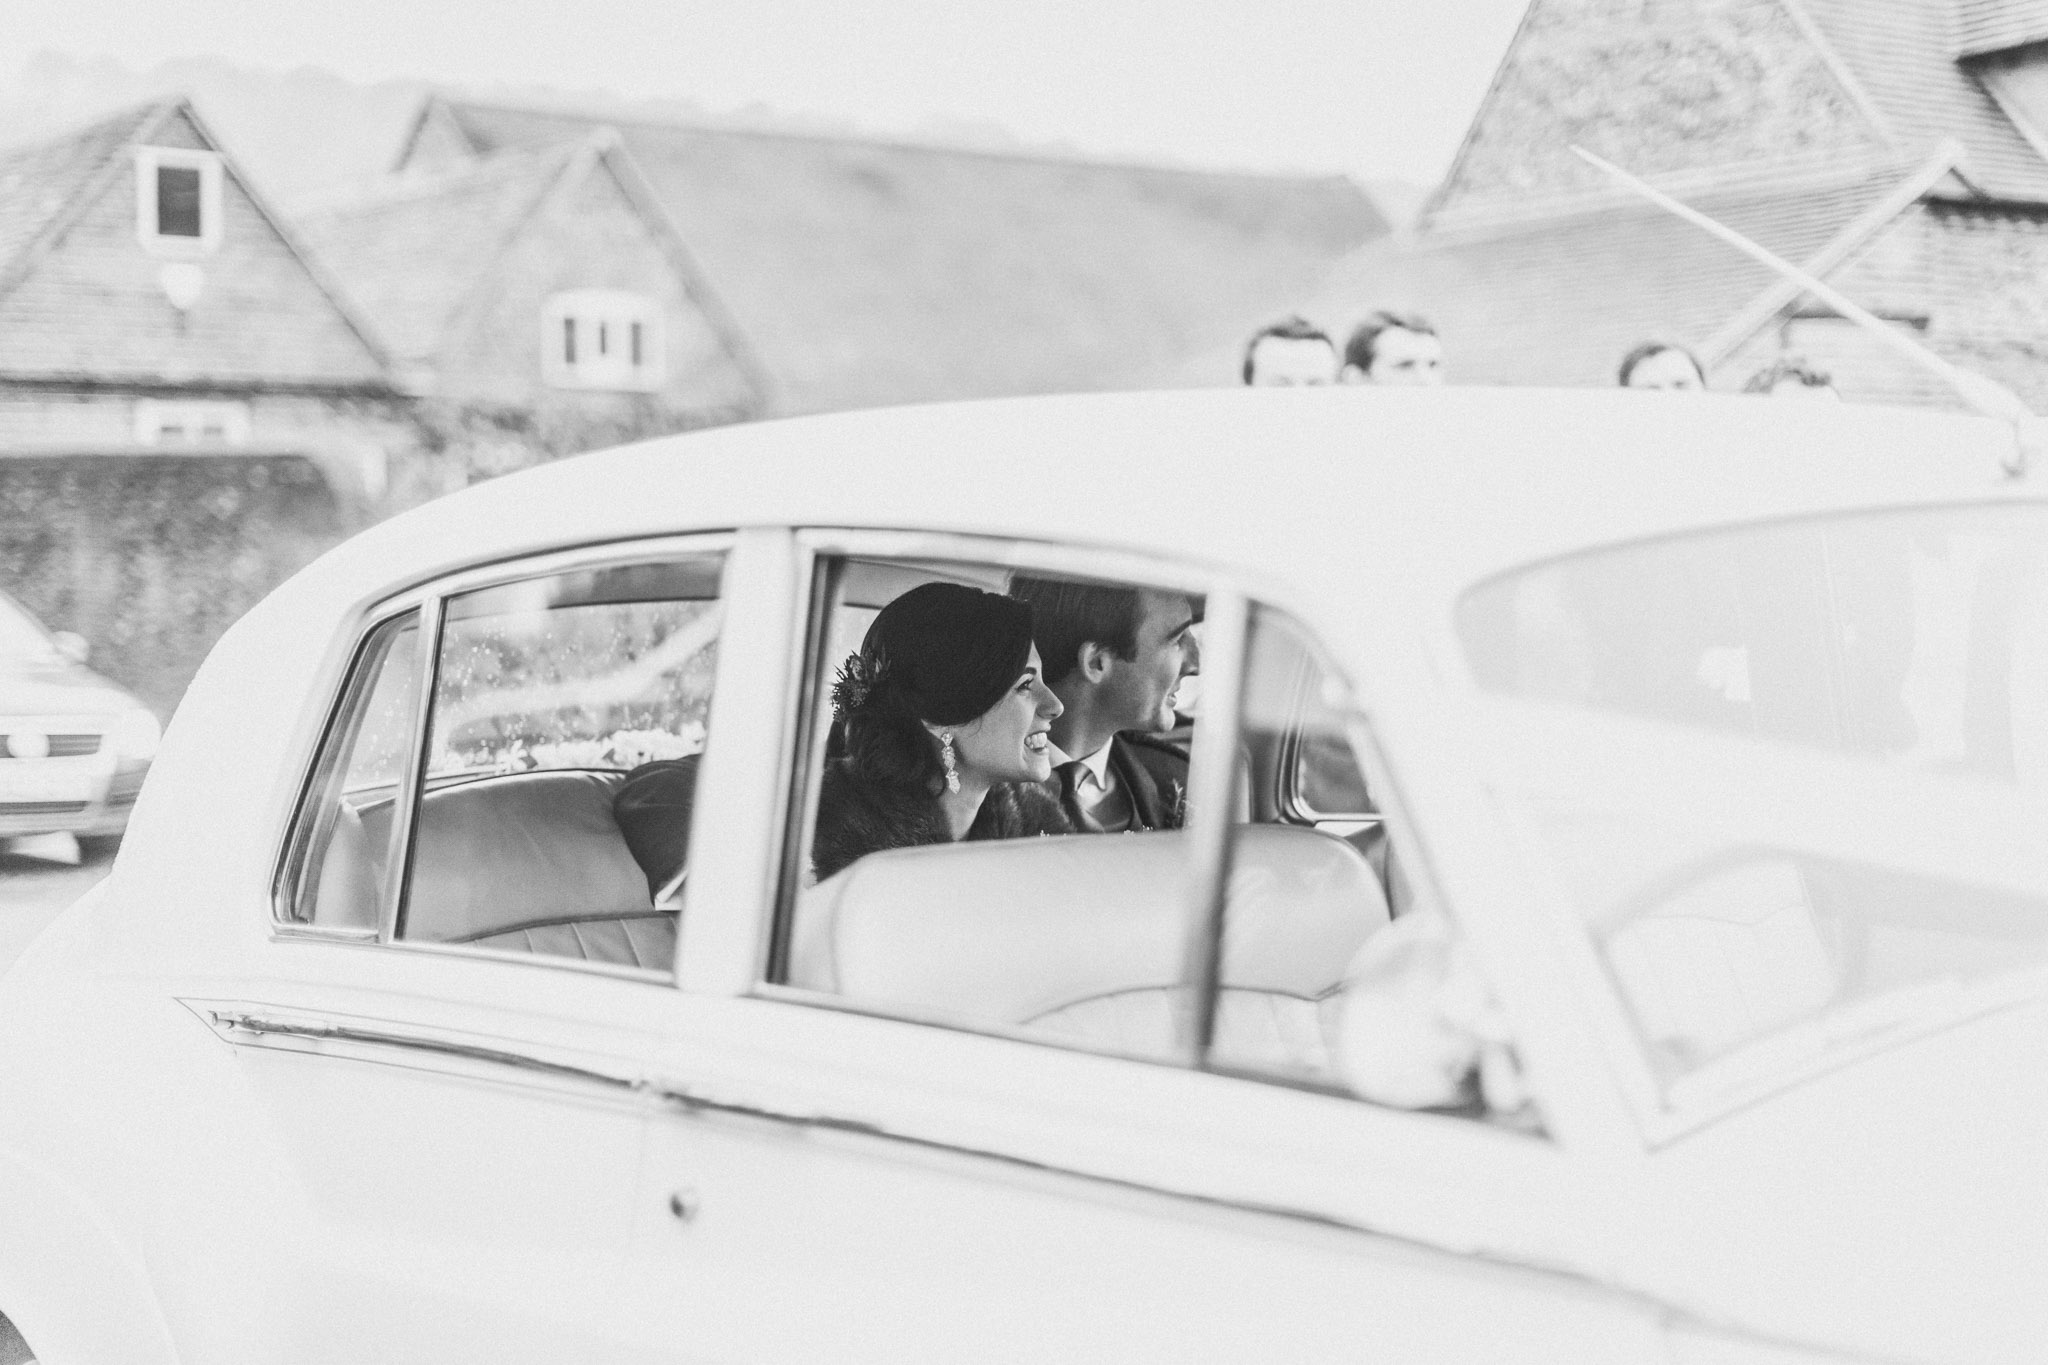 hambleden_henley_on_thames_wedding_044.jpg